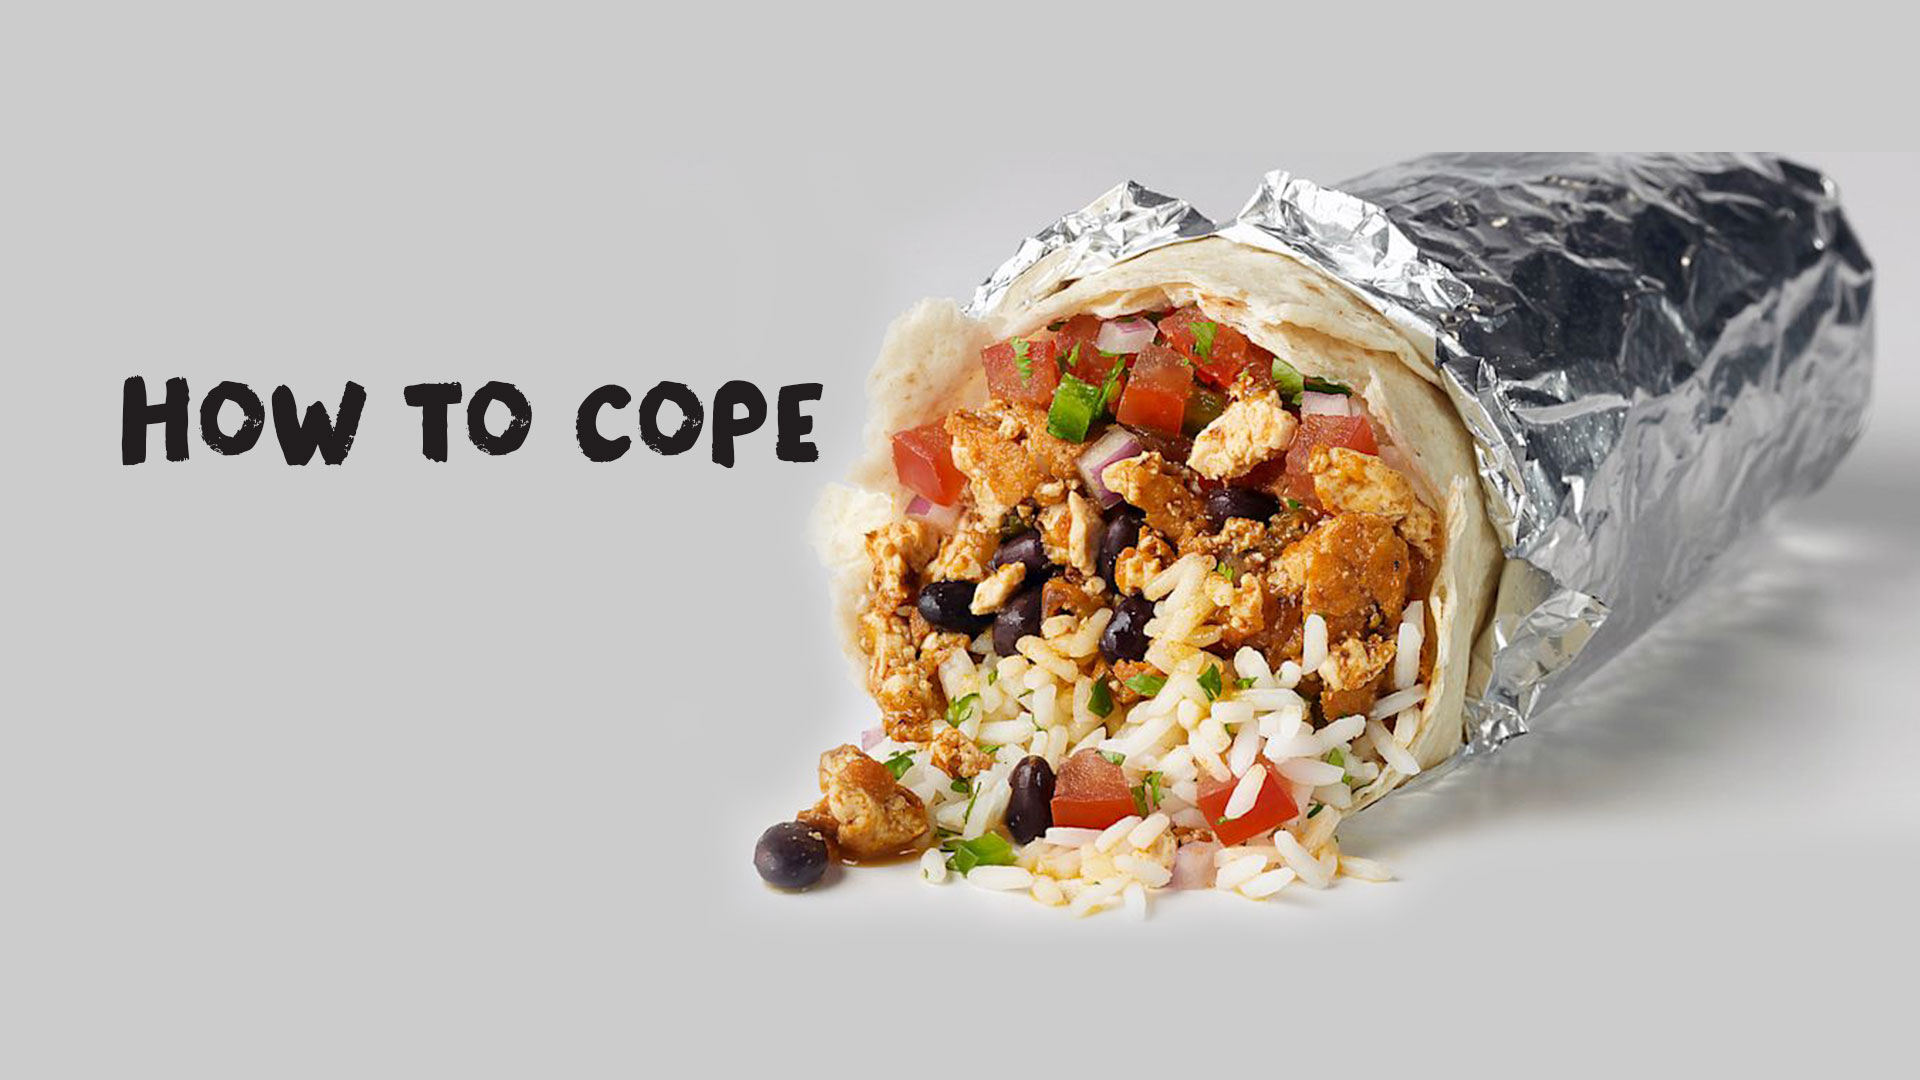 Chipotle Wallpaper